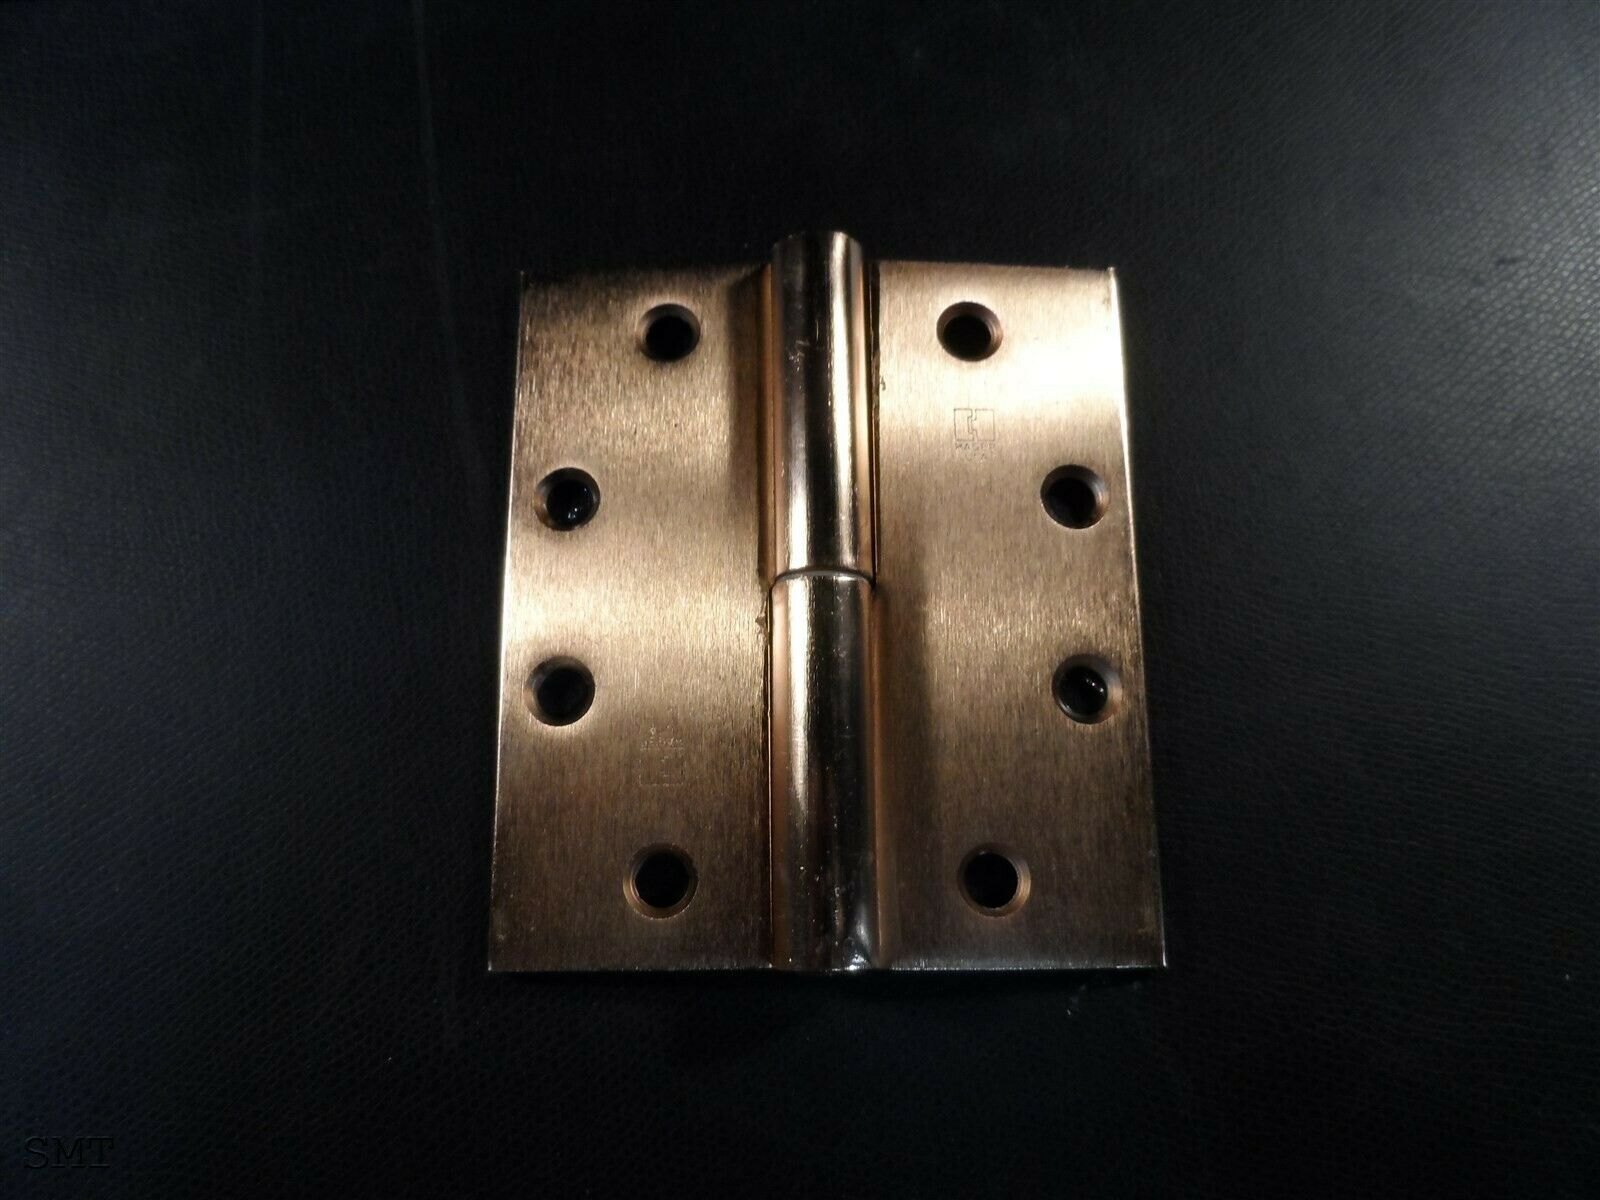 Hager BB1168 US15 5 x 4.5 Commercial Ball Bearing Door Hinge 3 Pack